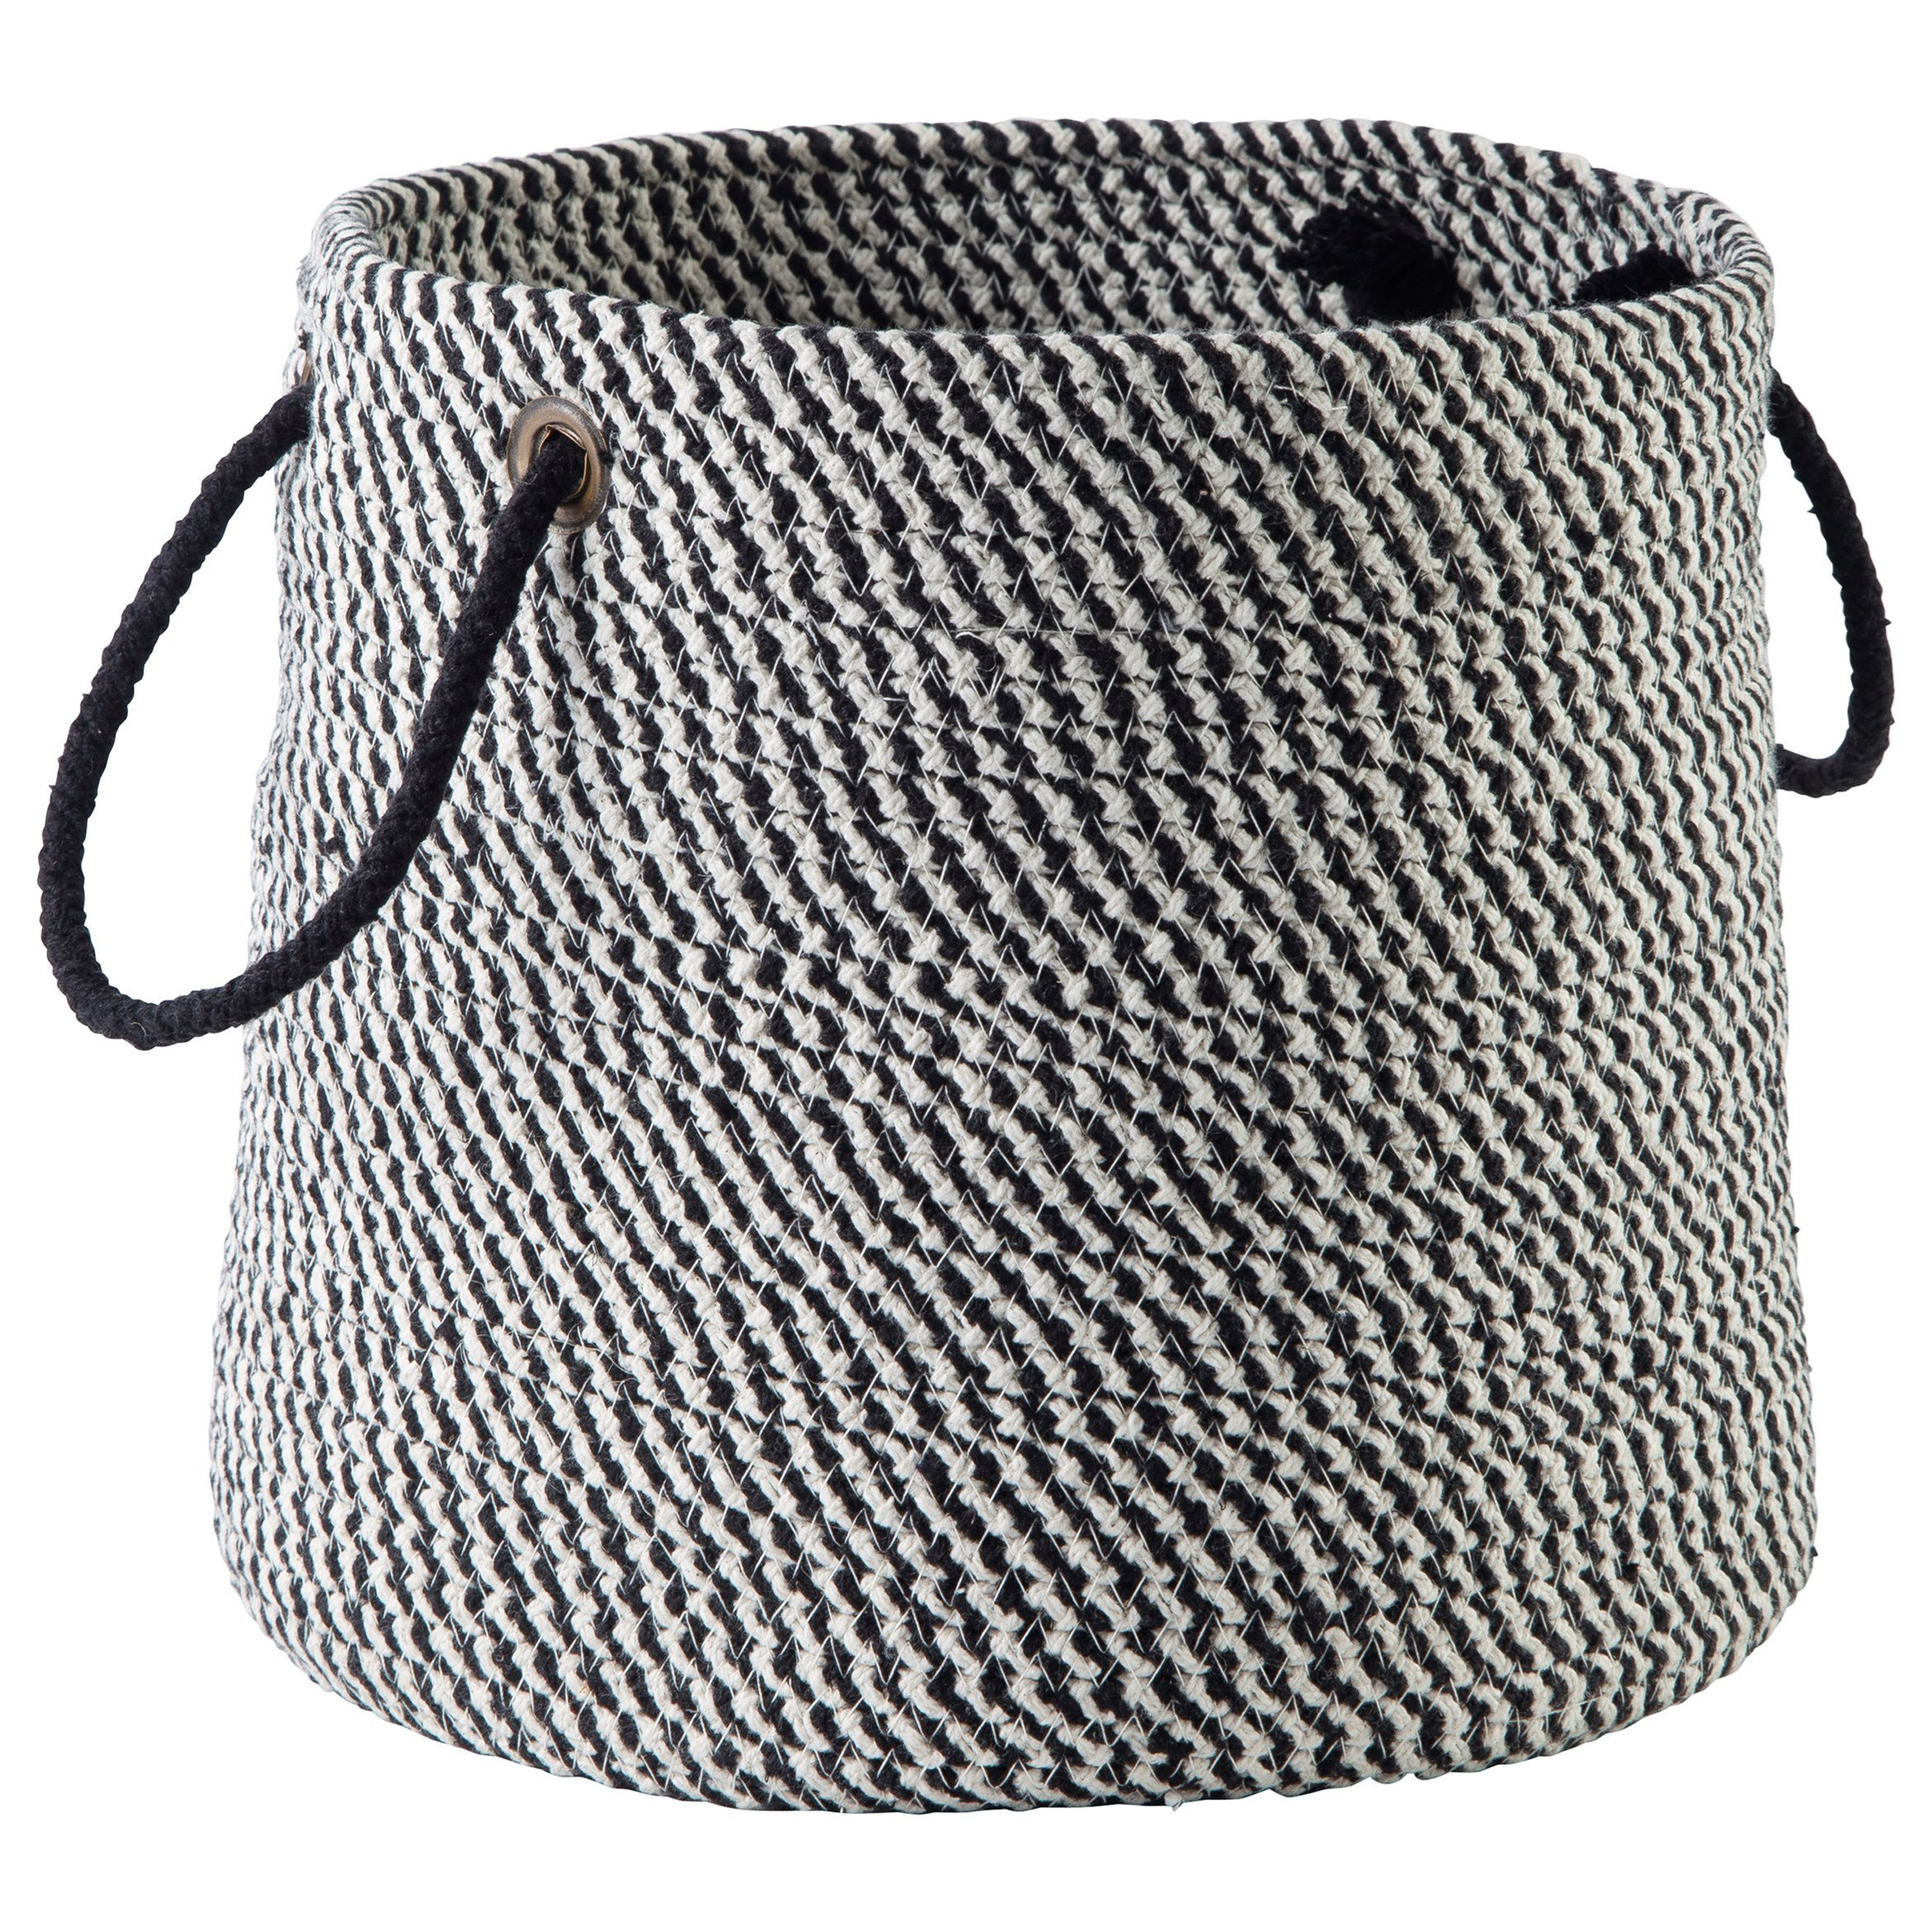 Accents Eider Black Basket by Signature Design by Ashley at Catalog Outlet